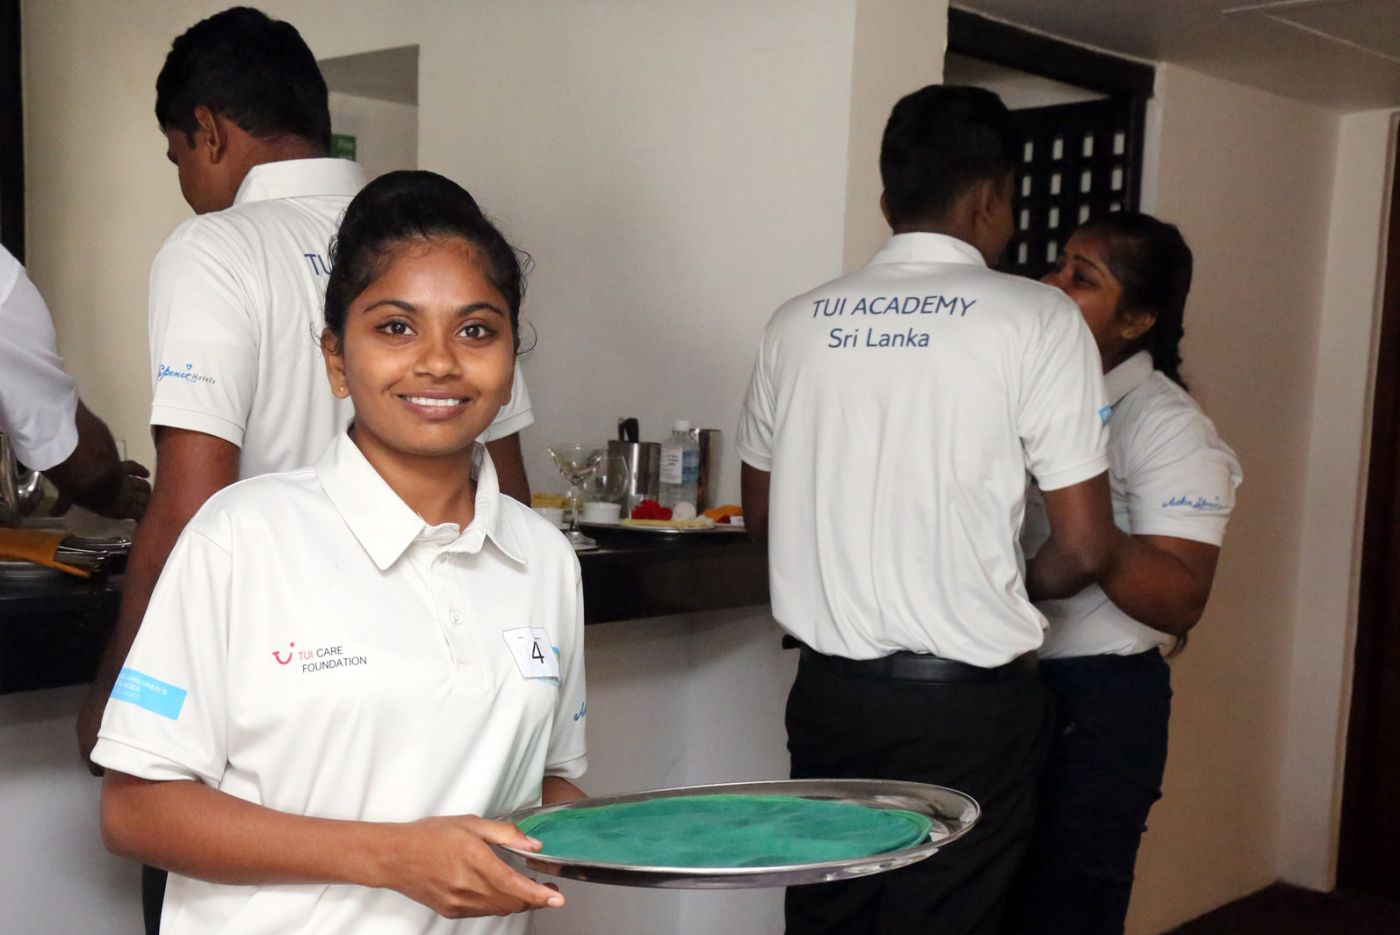 A young girl is holding a tray after serving drinks, as part of her hospitality training. She is a participant of our youth employment project, TUI Academy Sri Lanka, delivered in partnership with TUI Care Foundation.